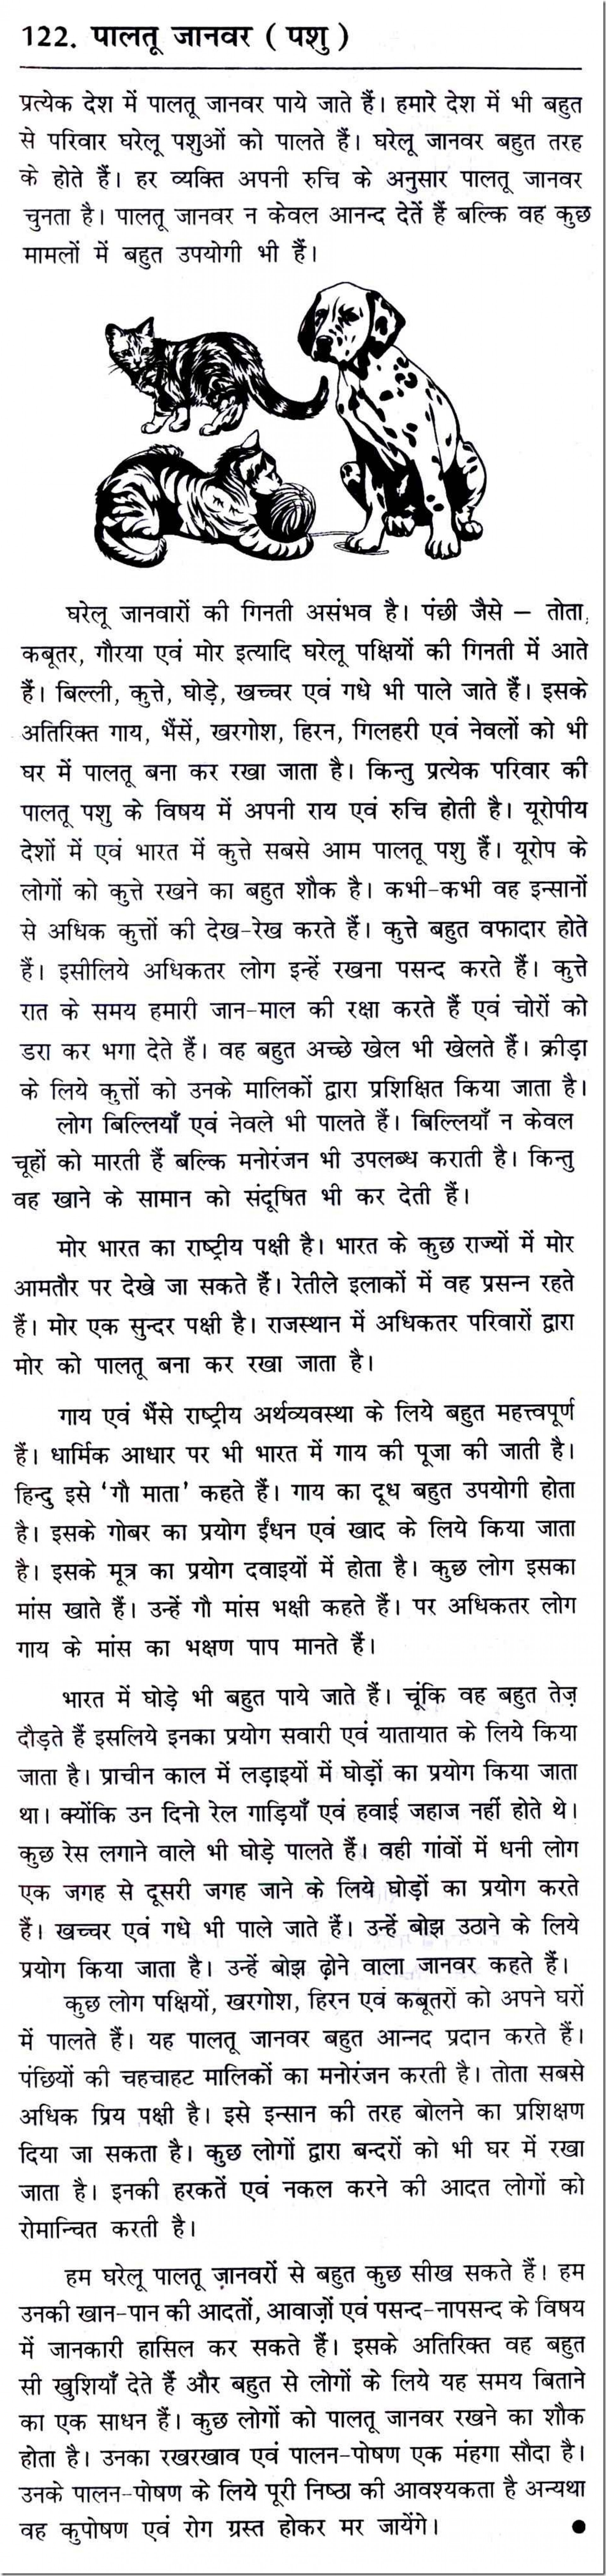 003 Essay On Love For Animals In Hindi 10124 Thumb Fascinating Towards And Birds 1920